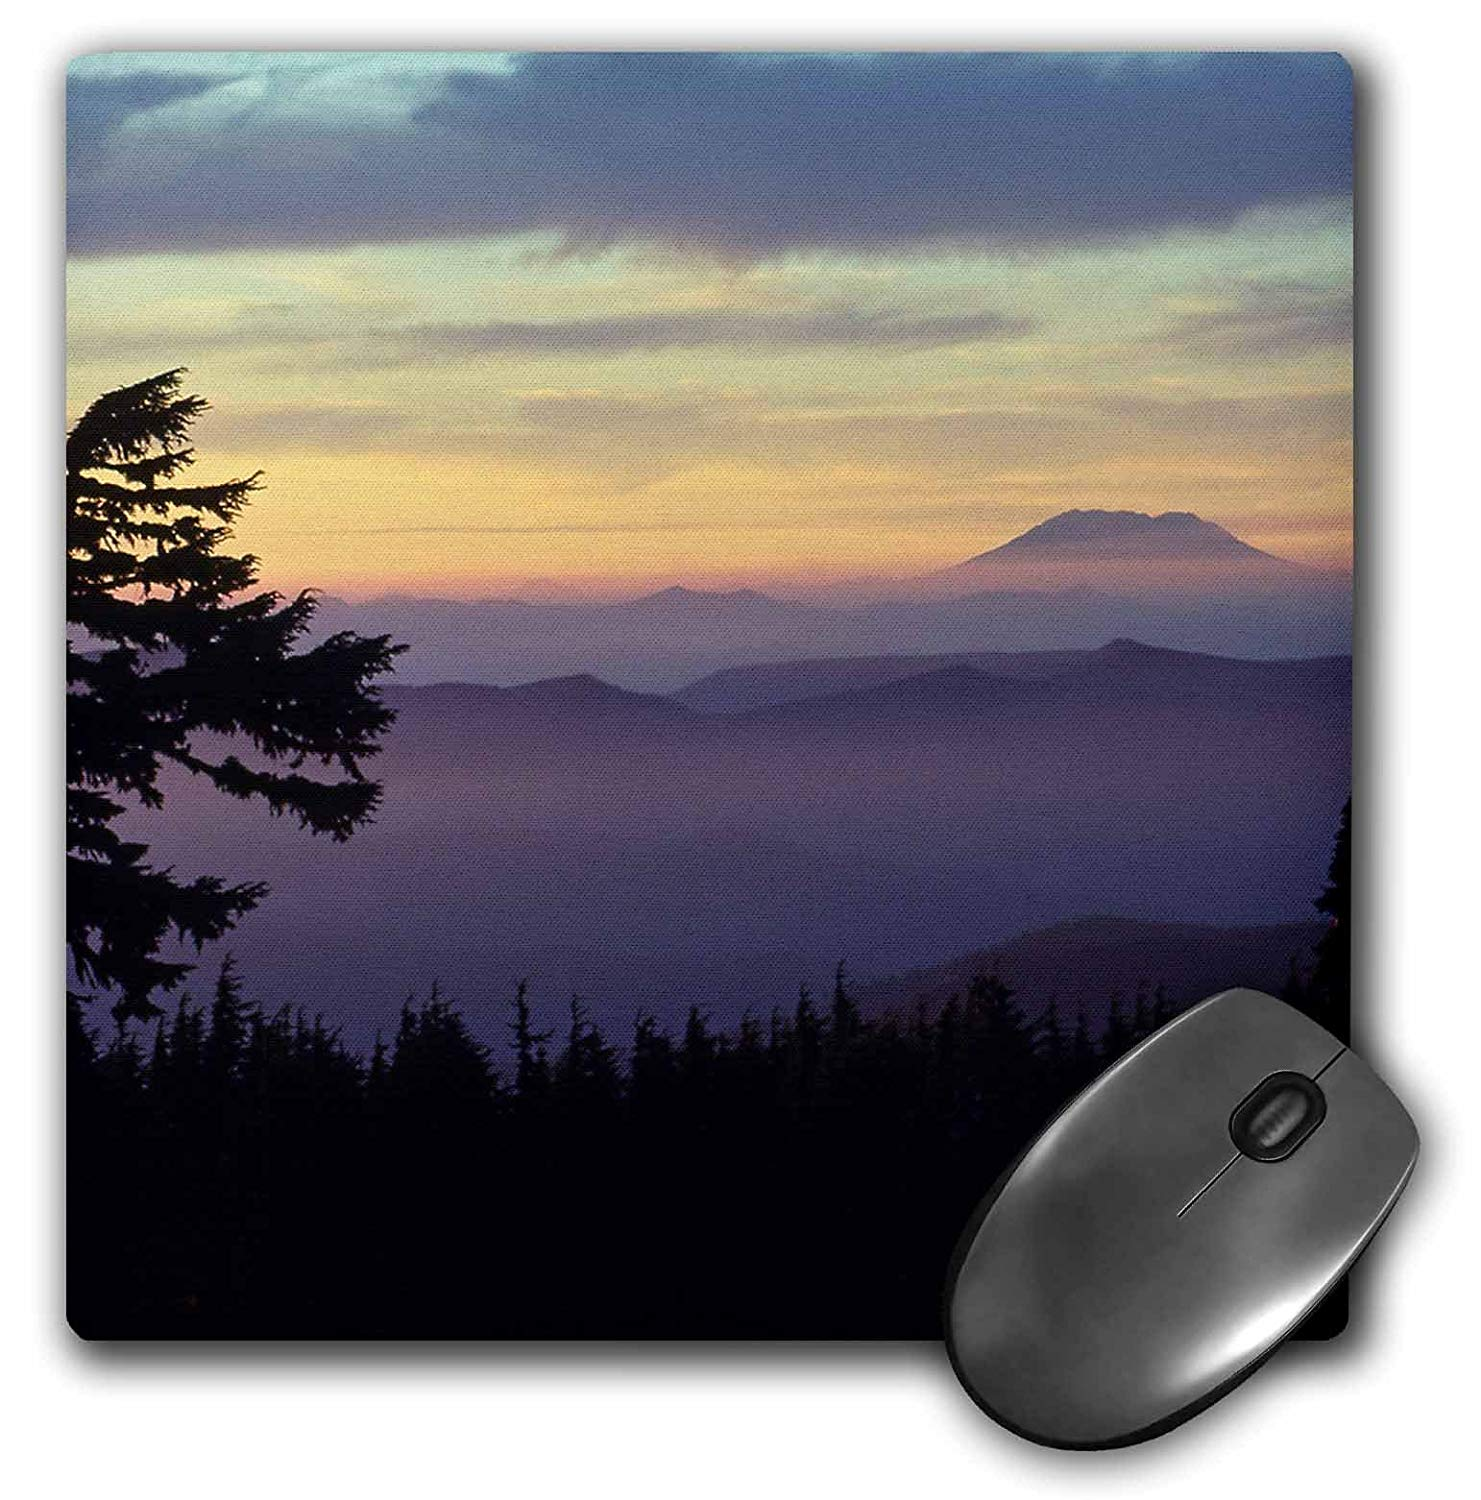 3dRose LLC 8 x 8 x 0.25 Inches Mouse Pad, Washington, Mt. St Helens From Mt. Hood Wilderness, Jaynes Gallery (mp_95116_1)